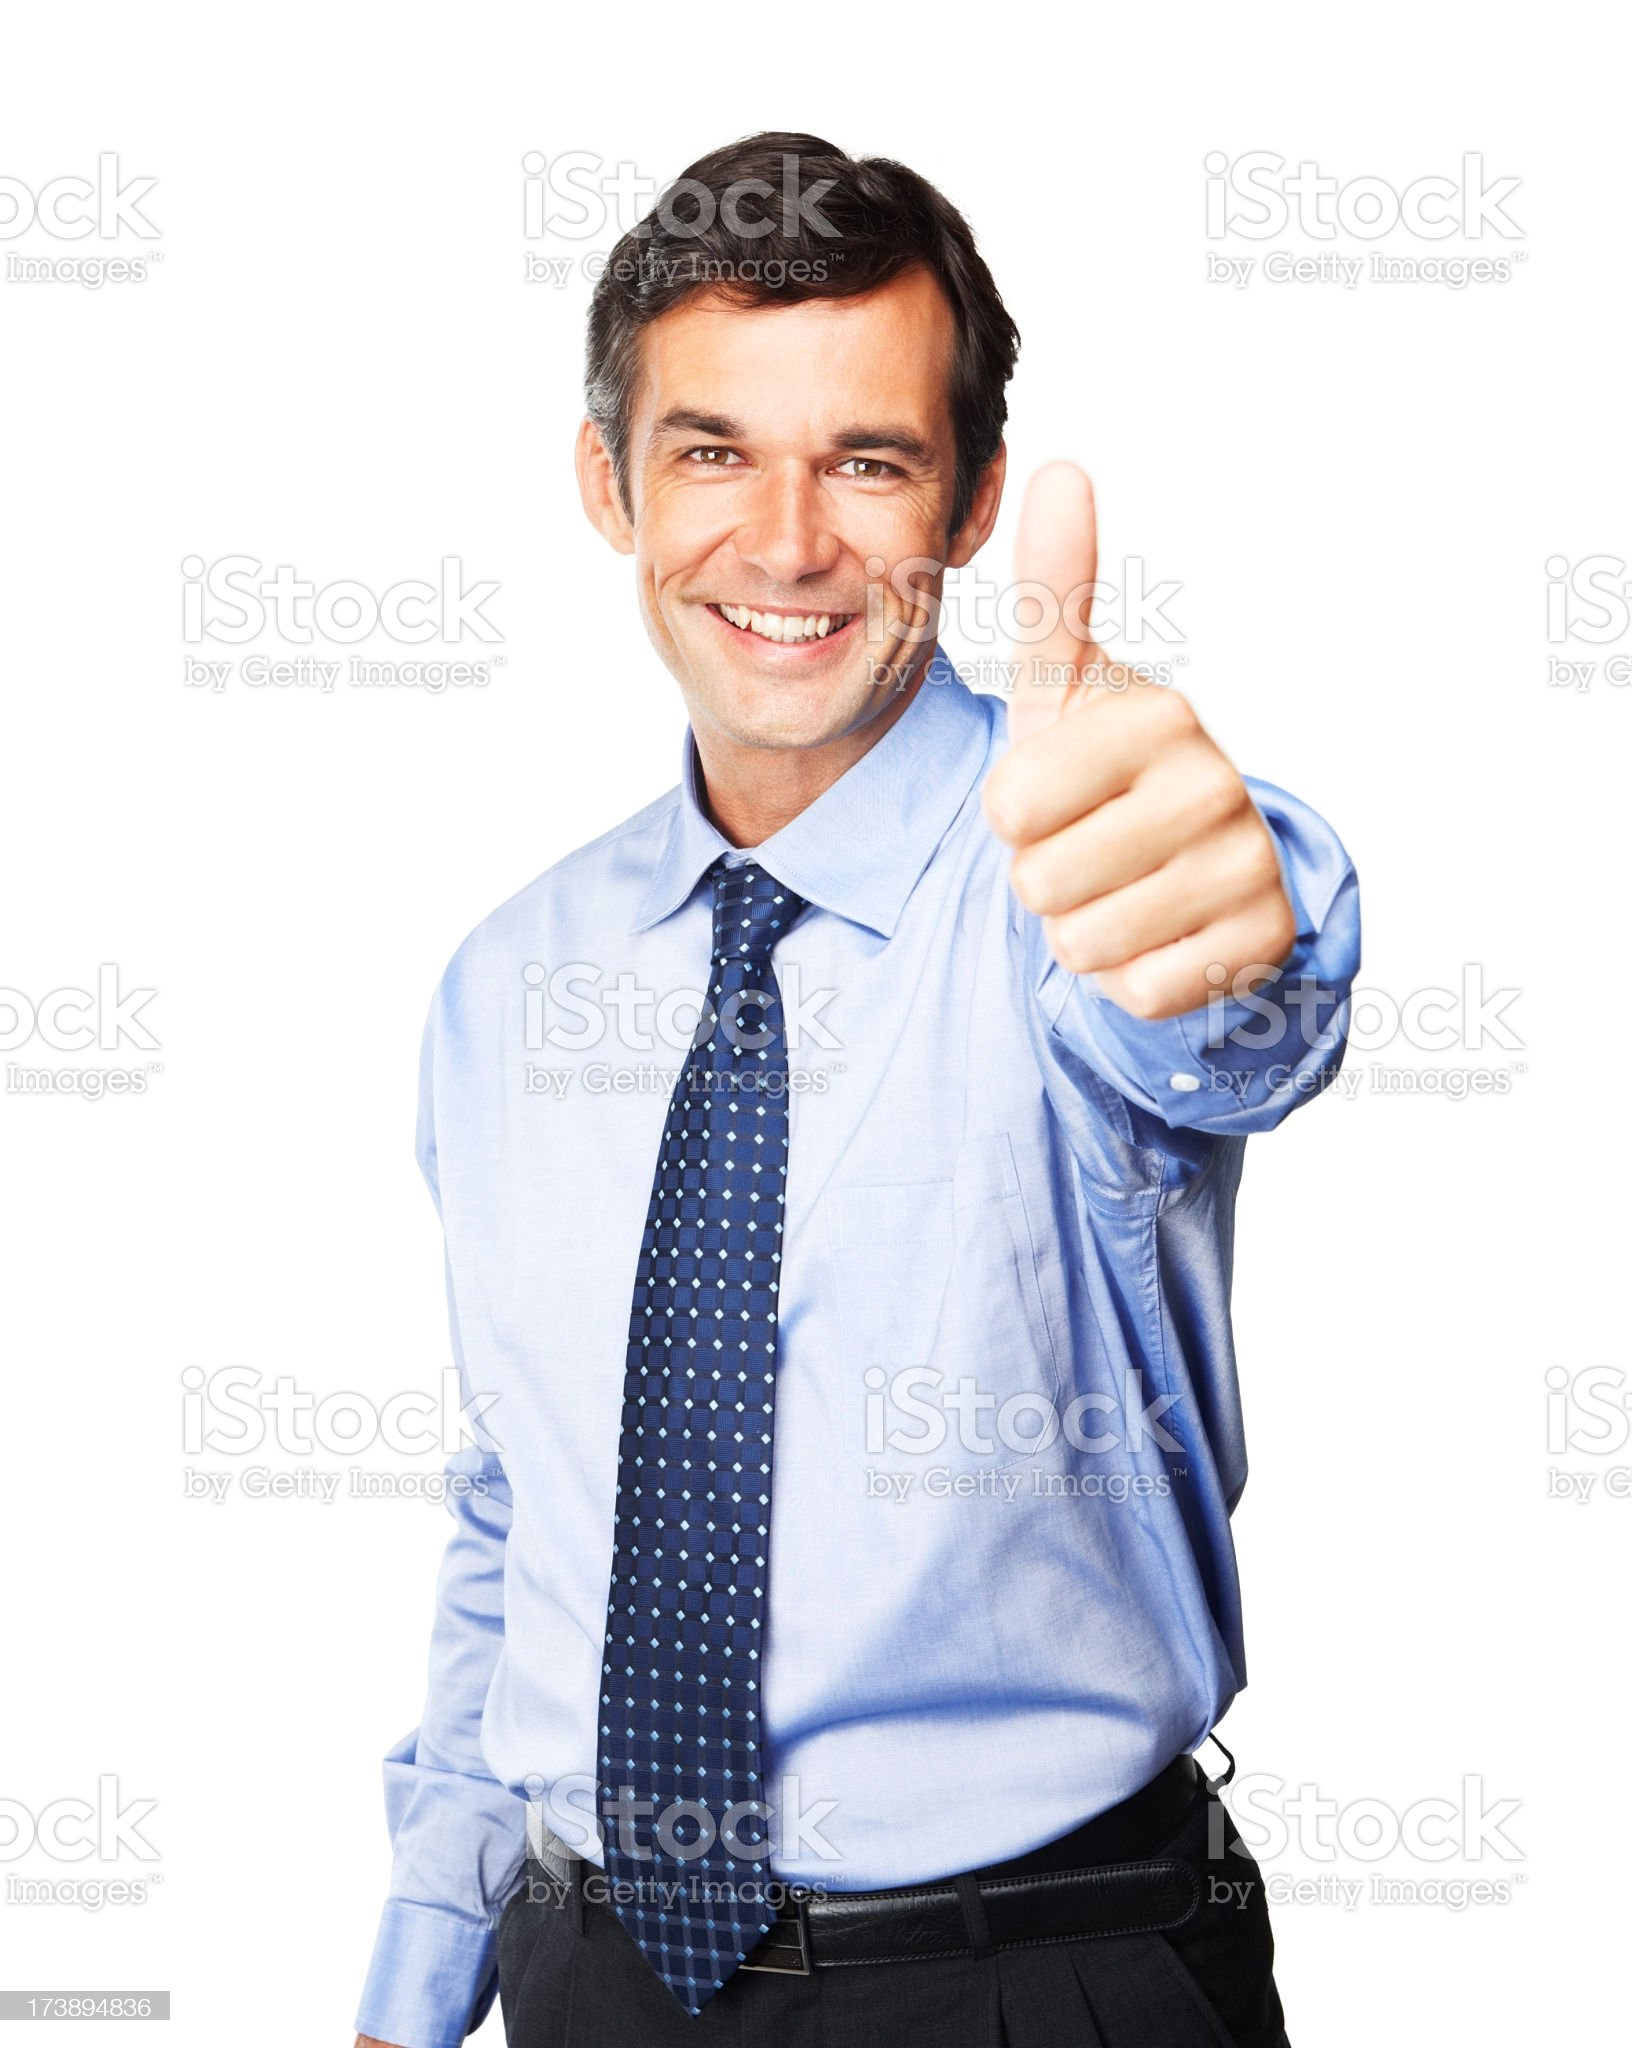 Smiling businessman giving the thumbs up royalty-free stock photo